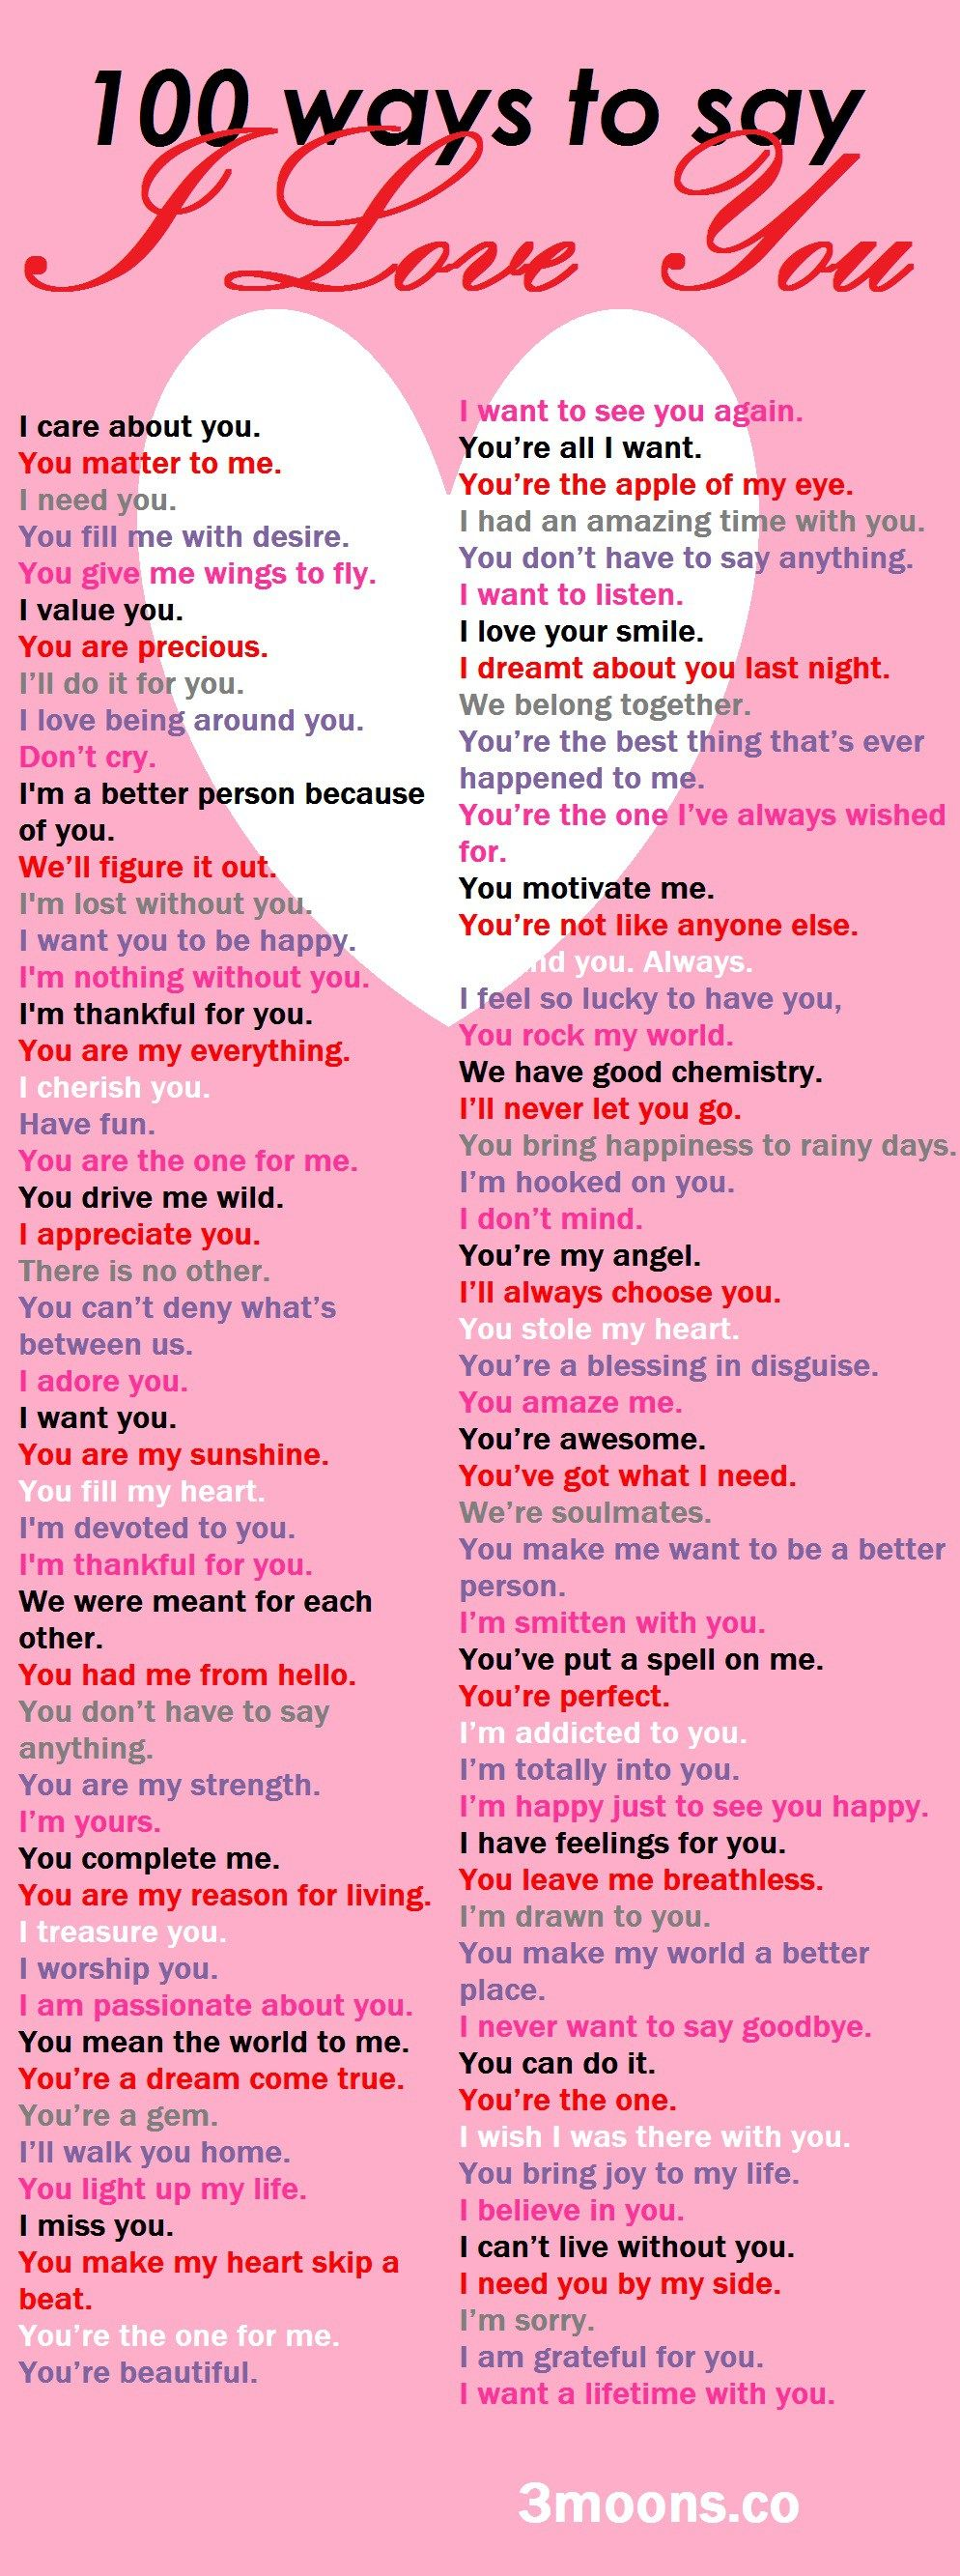 100 ways to say I Love You | Cute ideas | Relationship